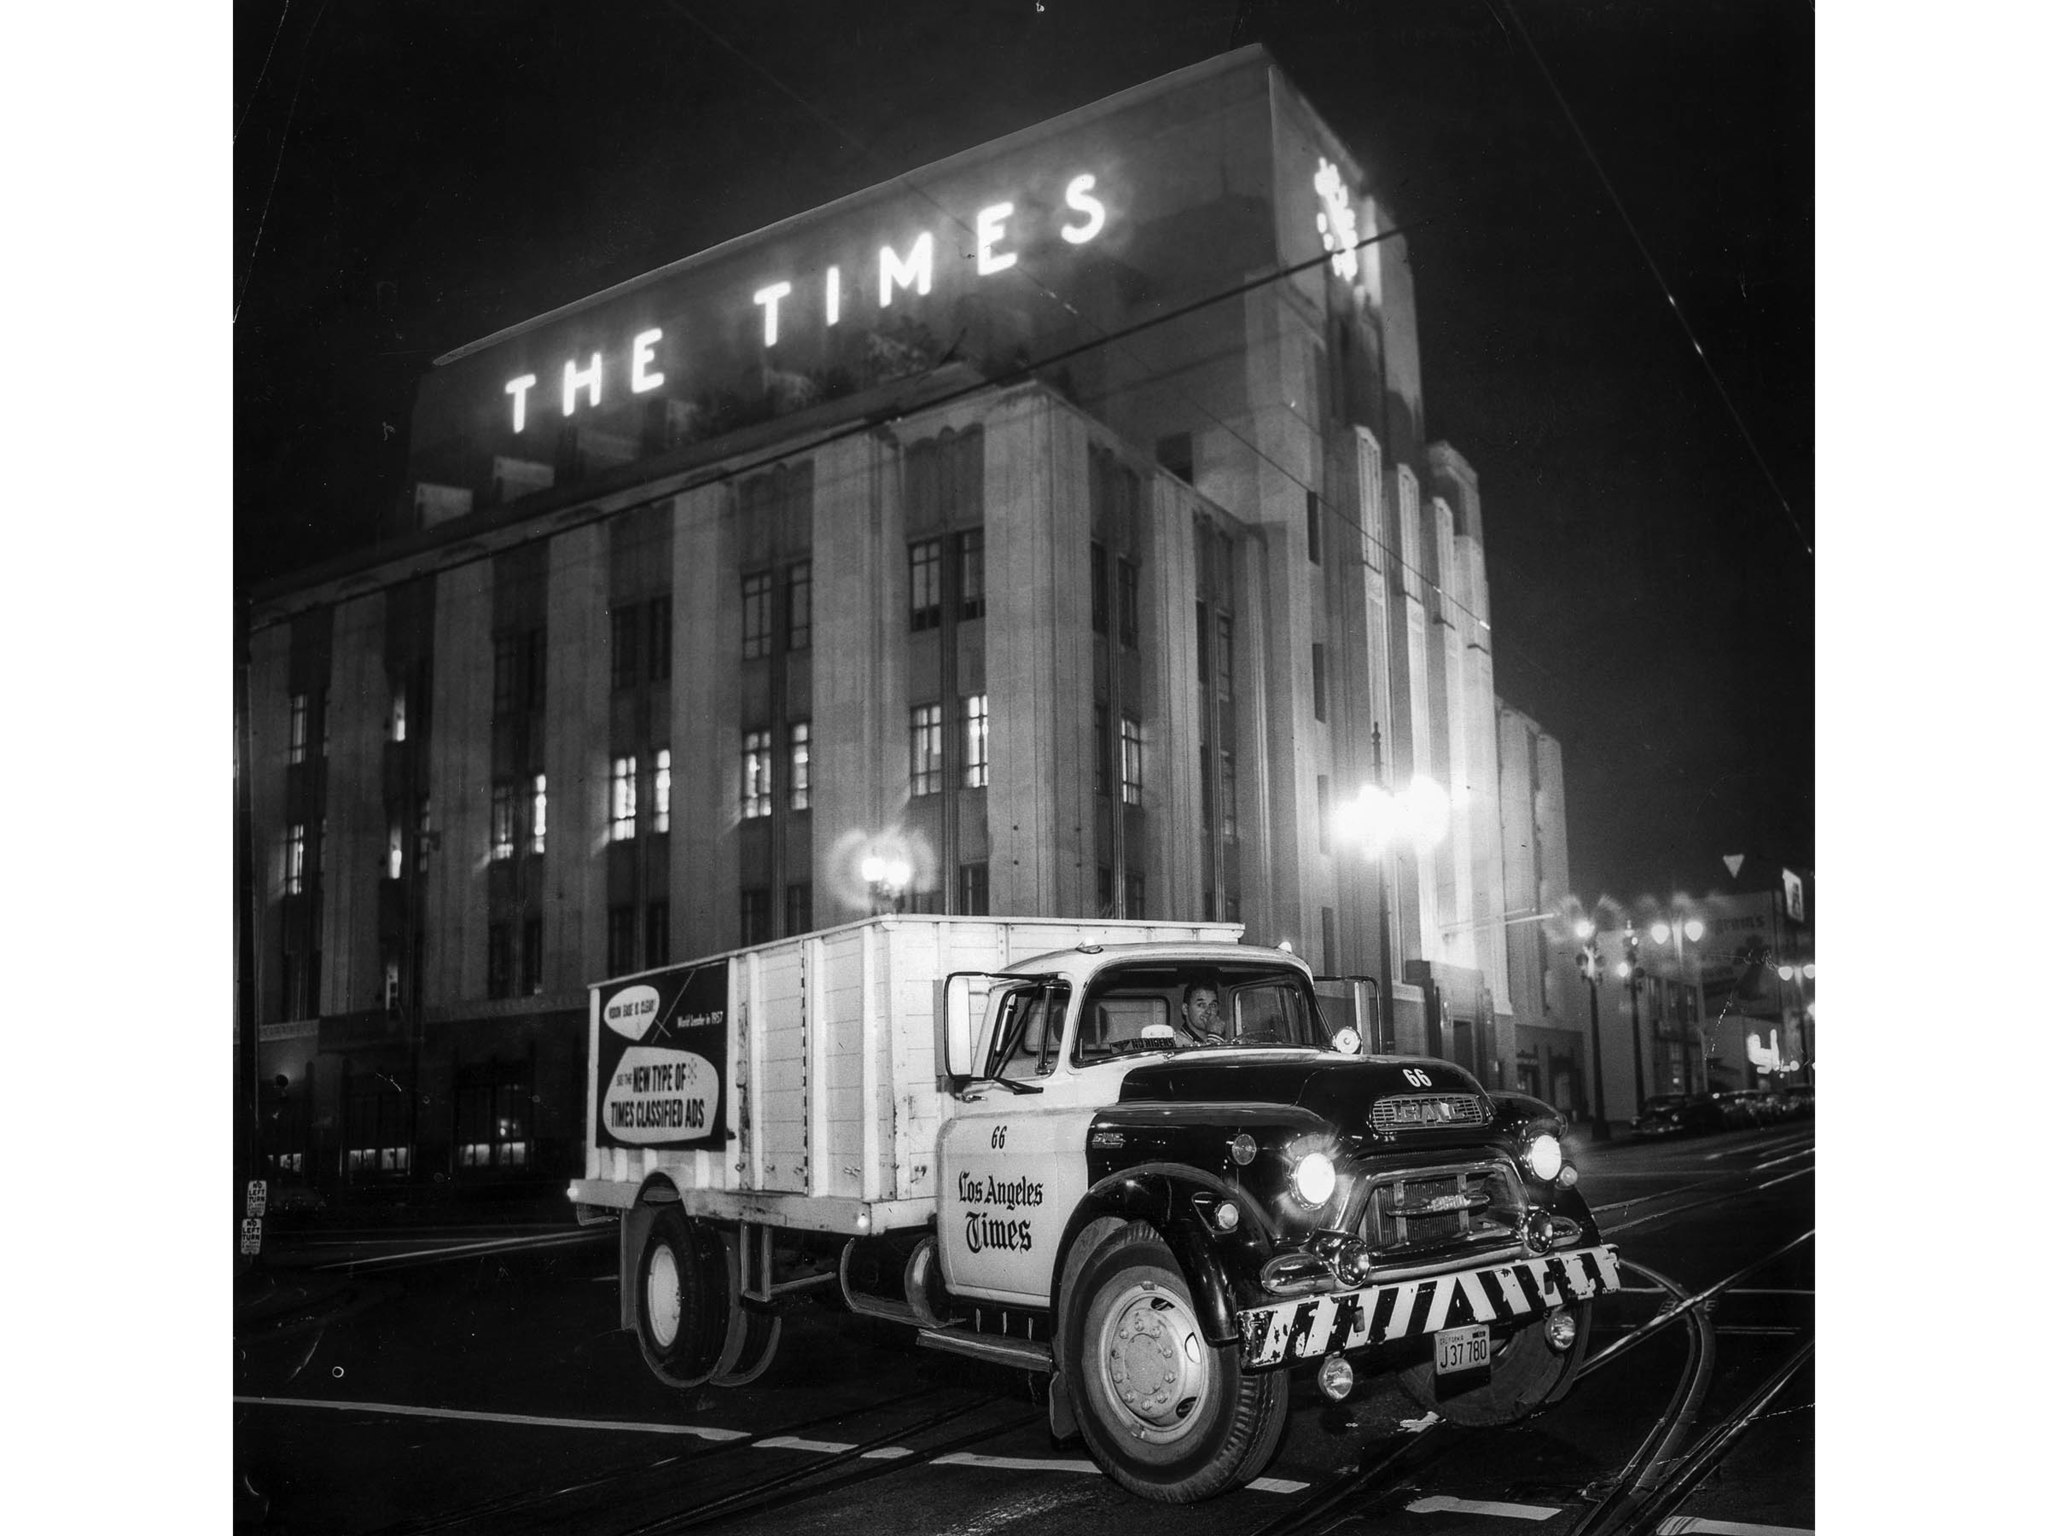 Dec. 1, 1957: Los Angeles Times truck, one of a fleet of 70, leaves the Times building with five ton